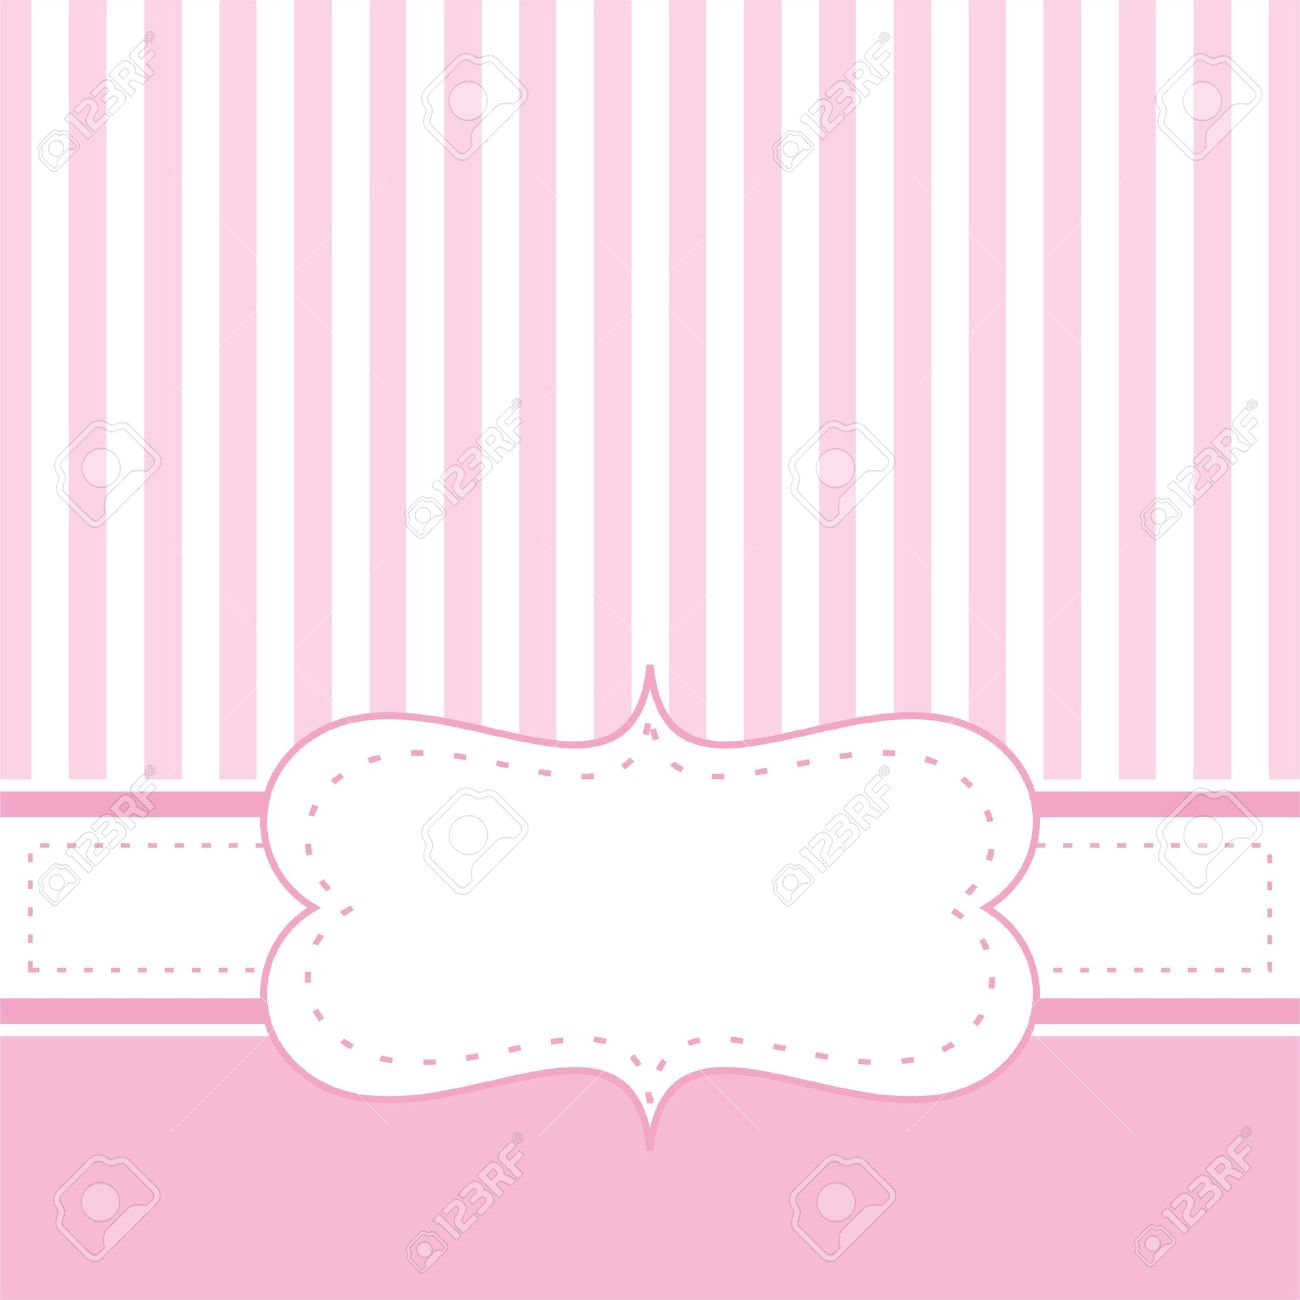 Card Invitation Template For Baby Shower Wedding Or Birthday – Card Invitation Template